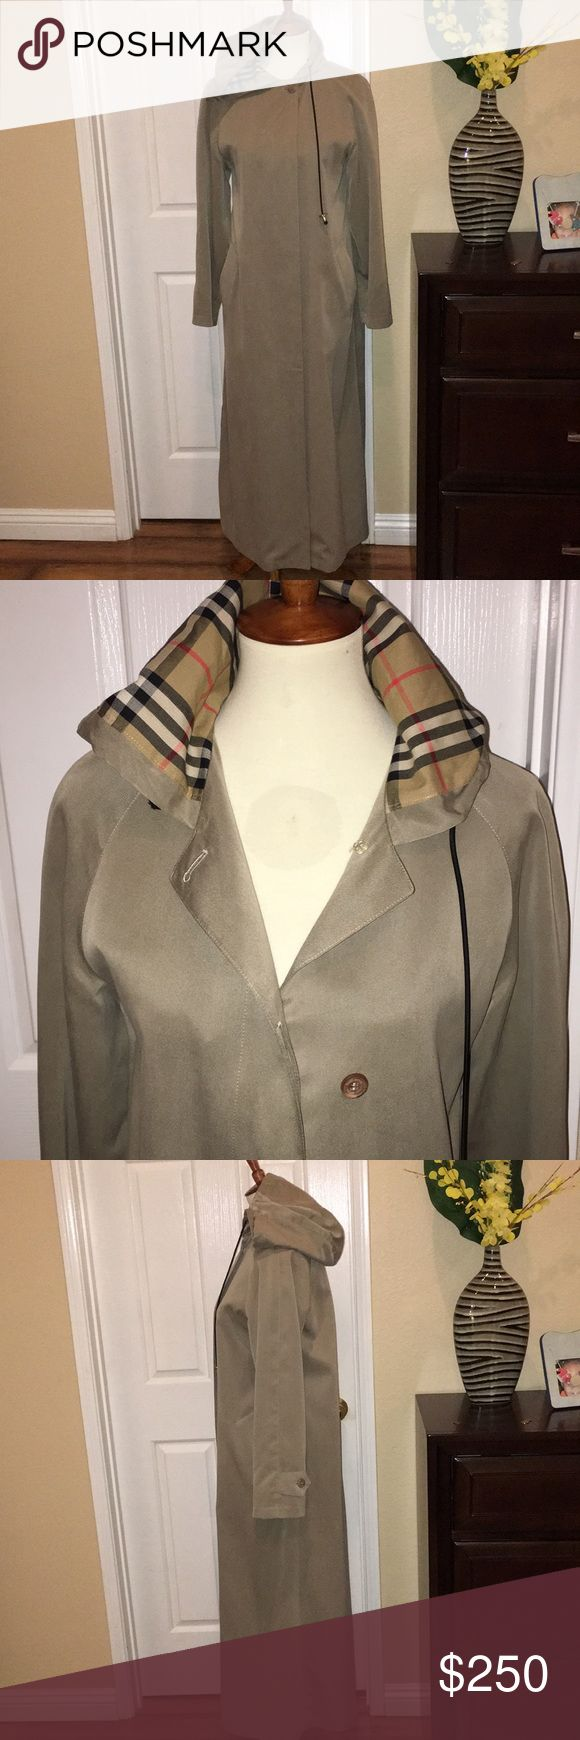 BURBERRY LONDON WOMENS RAINCOAT Color is a grayish beige, falls below the calf with a long slit. Partially lined through the upper back and sleeves with attached hoodie. Dry clean with special care. DoNotWash. Polyester, rayon, viscose. Lining polyester and cotton. Very stylish and unusual. This an authentic item so spare me the cross-examination about receipts and codes and witnesses. Burberry Jackets & Coats #RaincoatsForWomenLondon